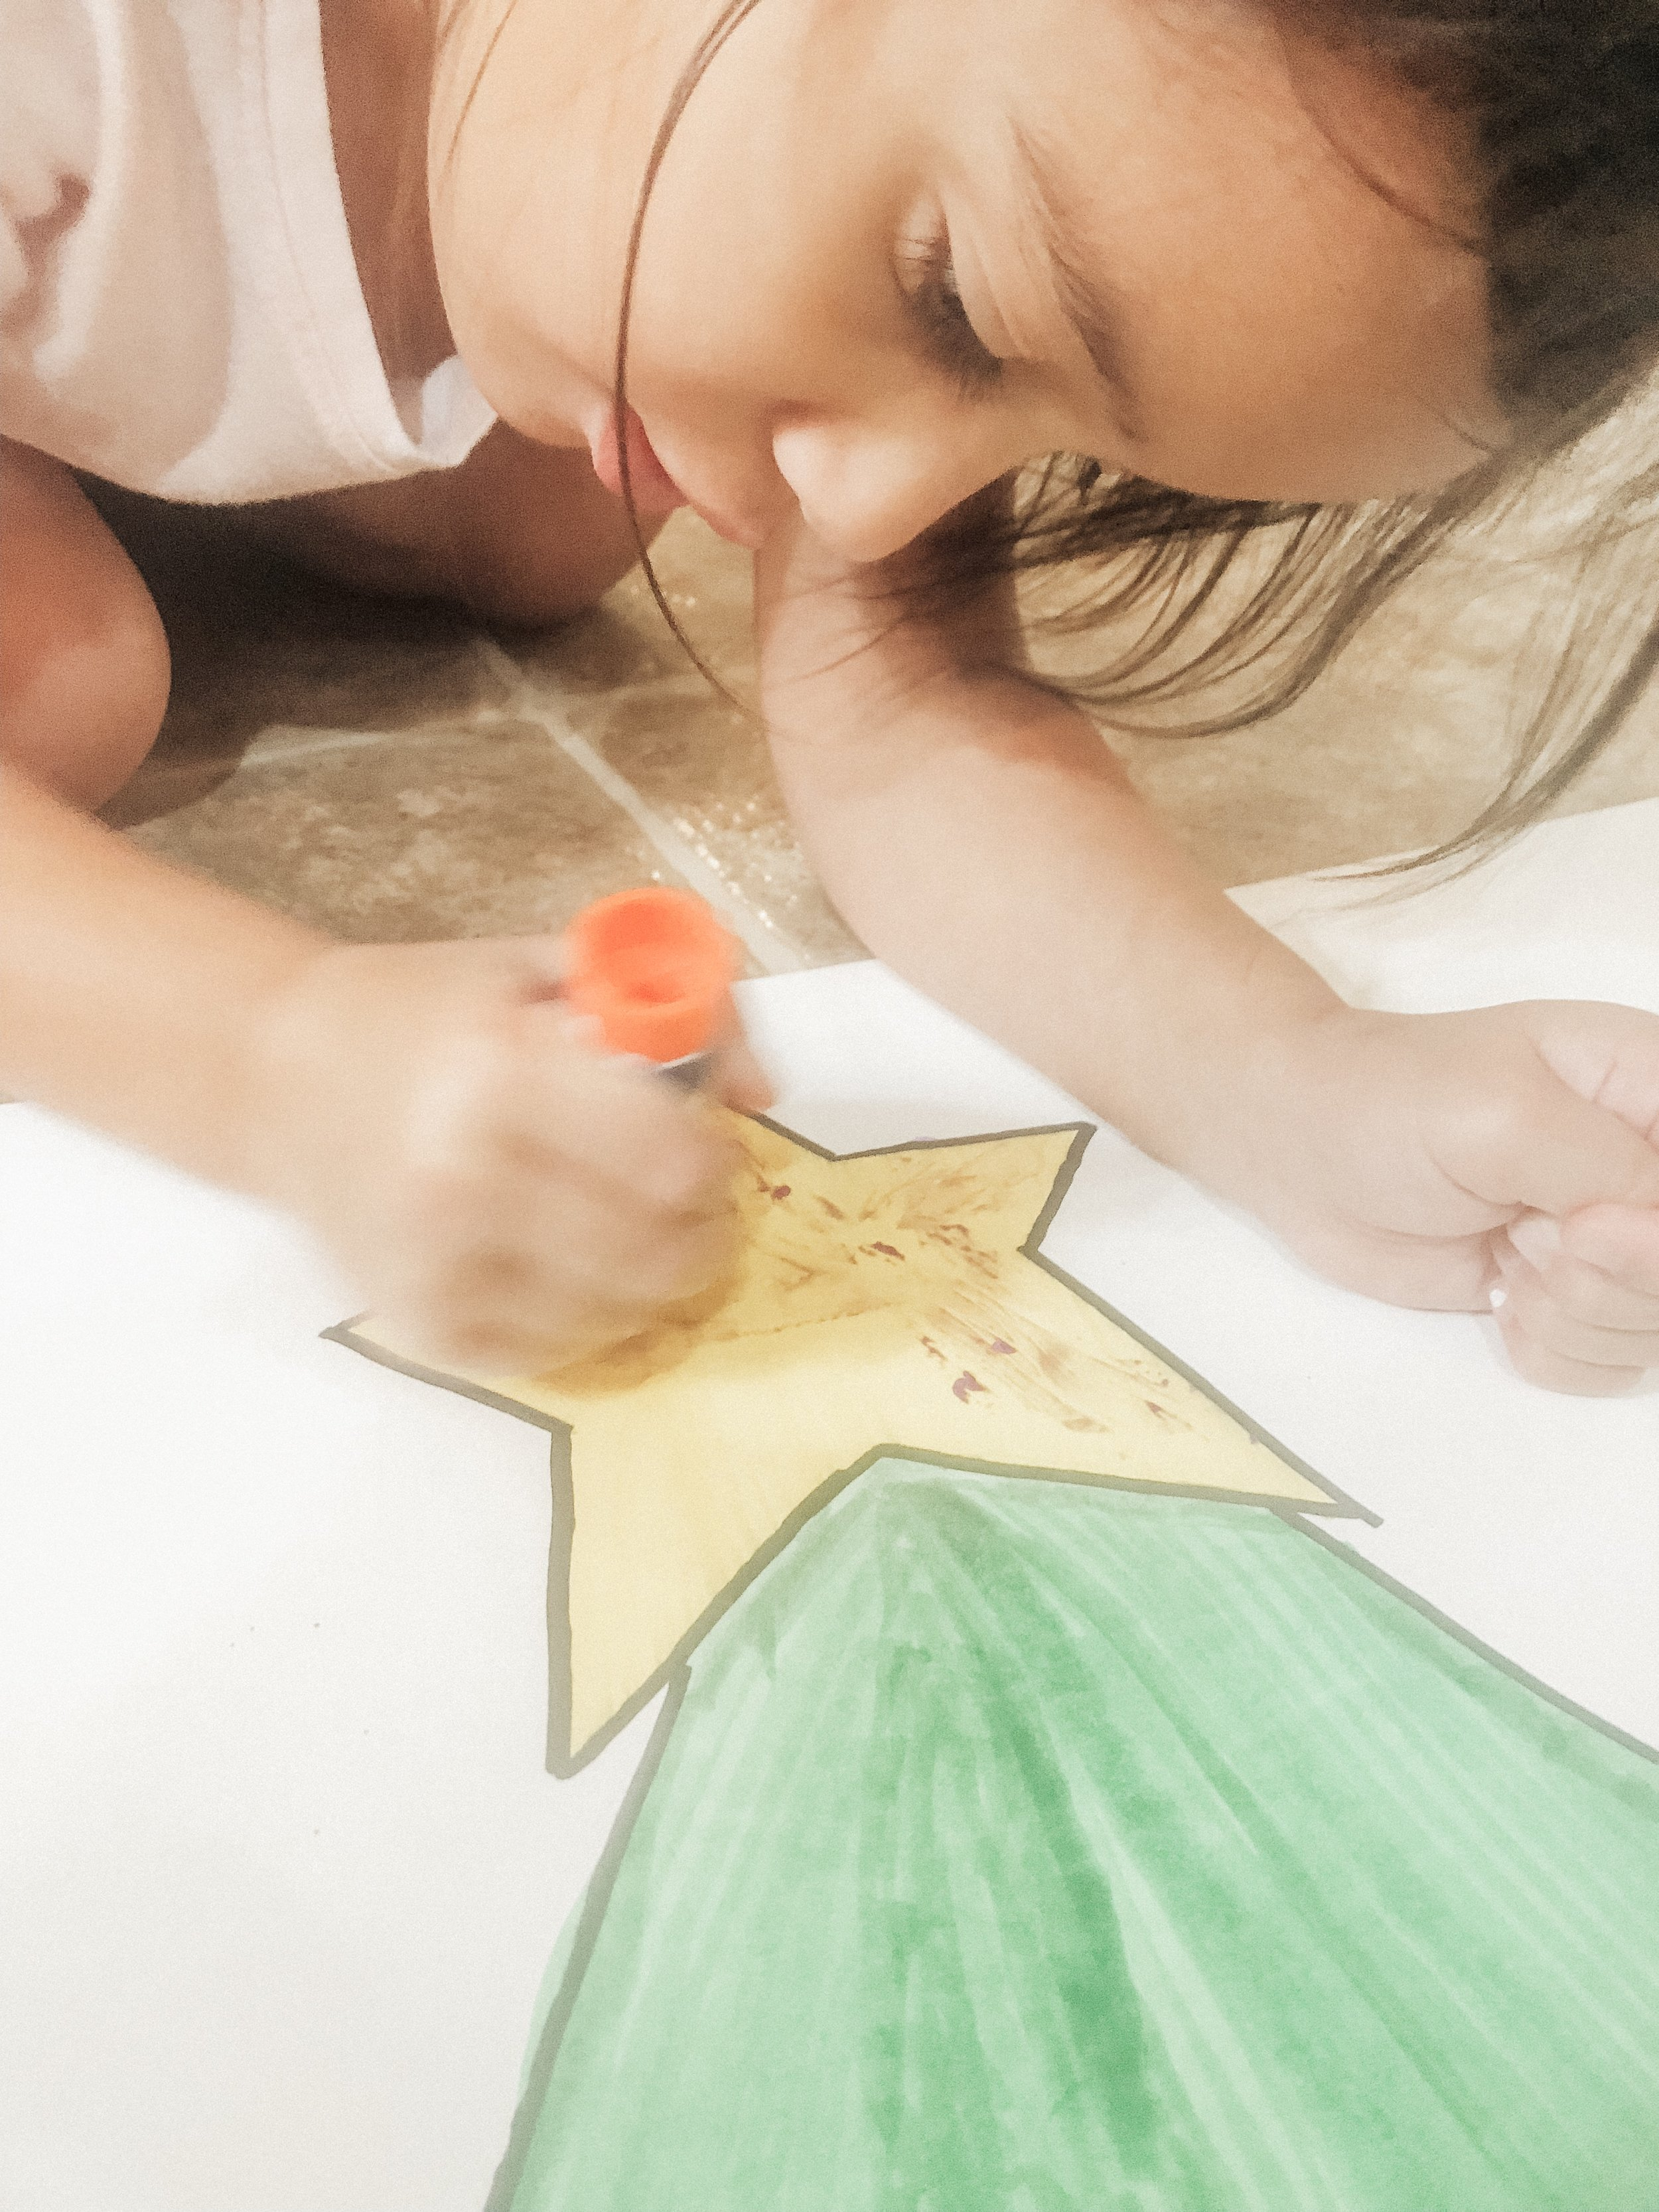 She told me the star HAD to have glitter!